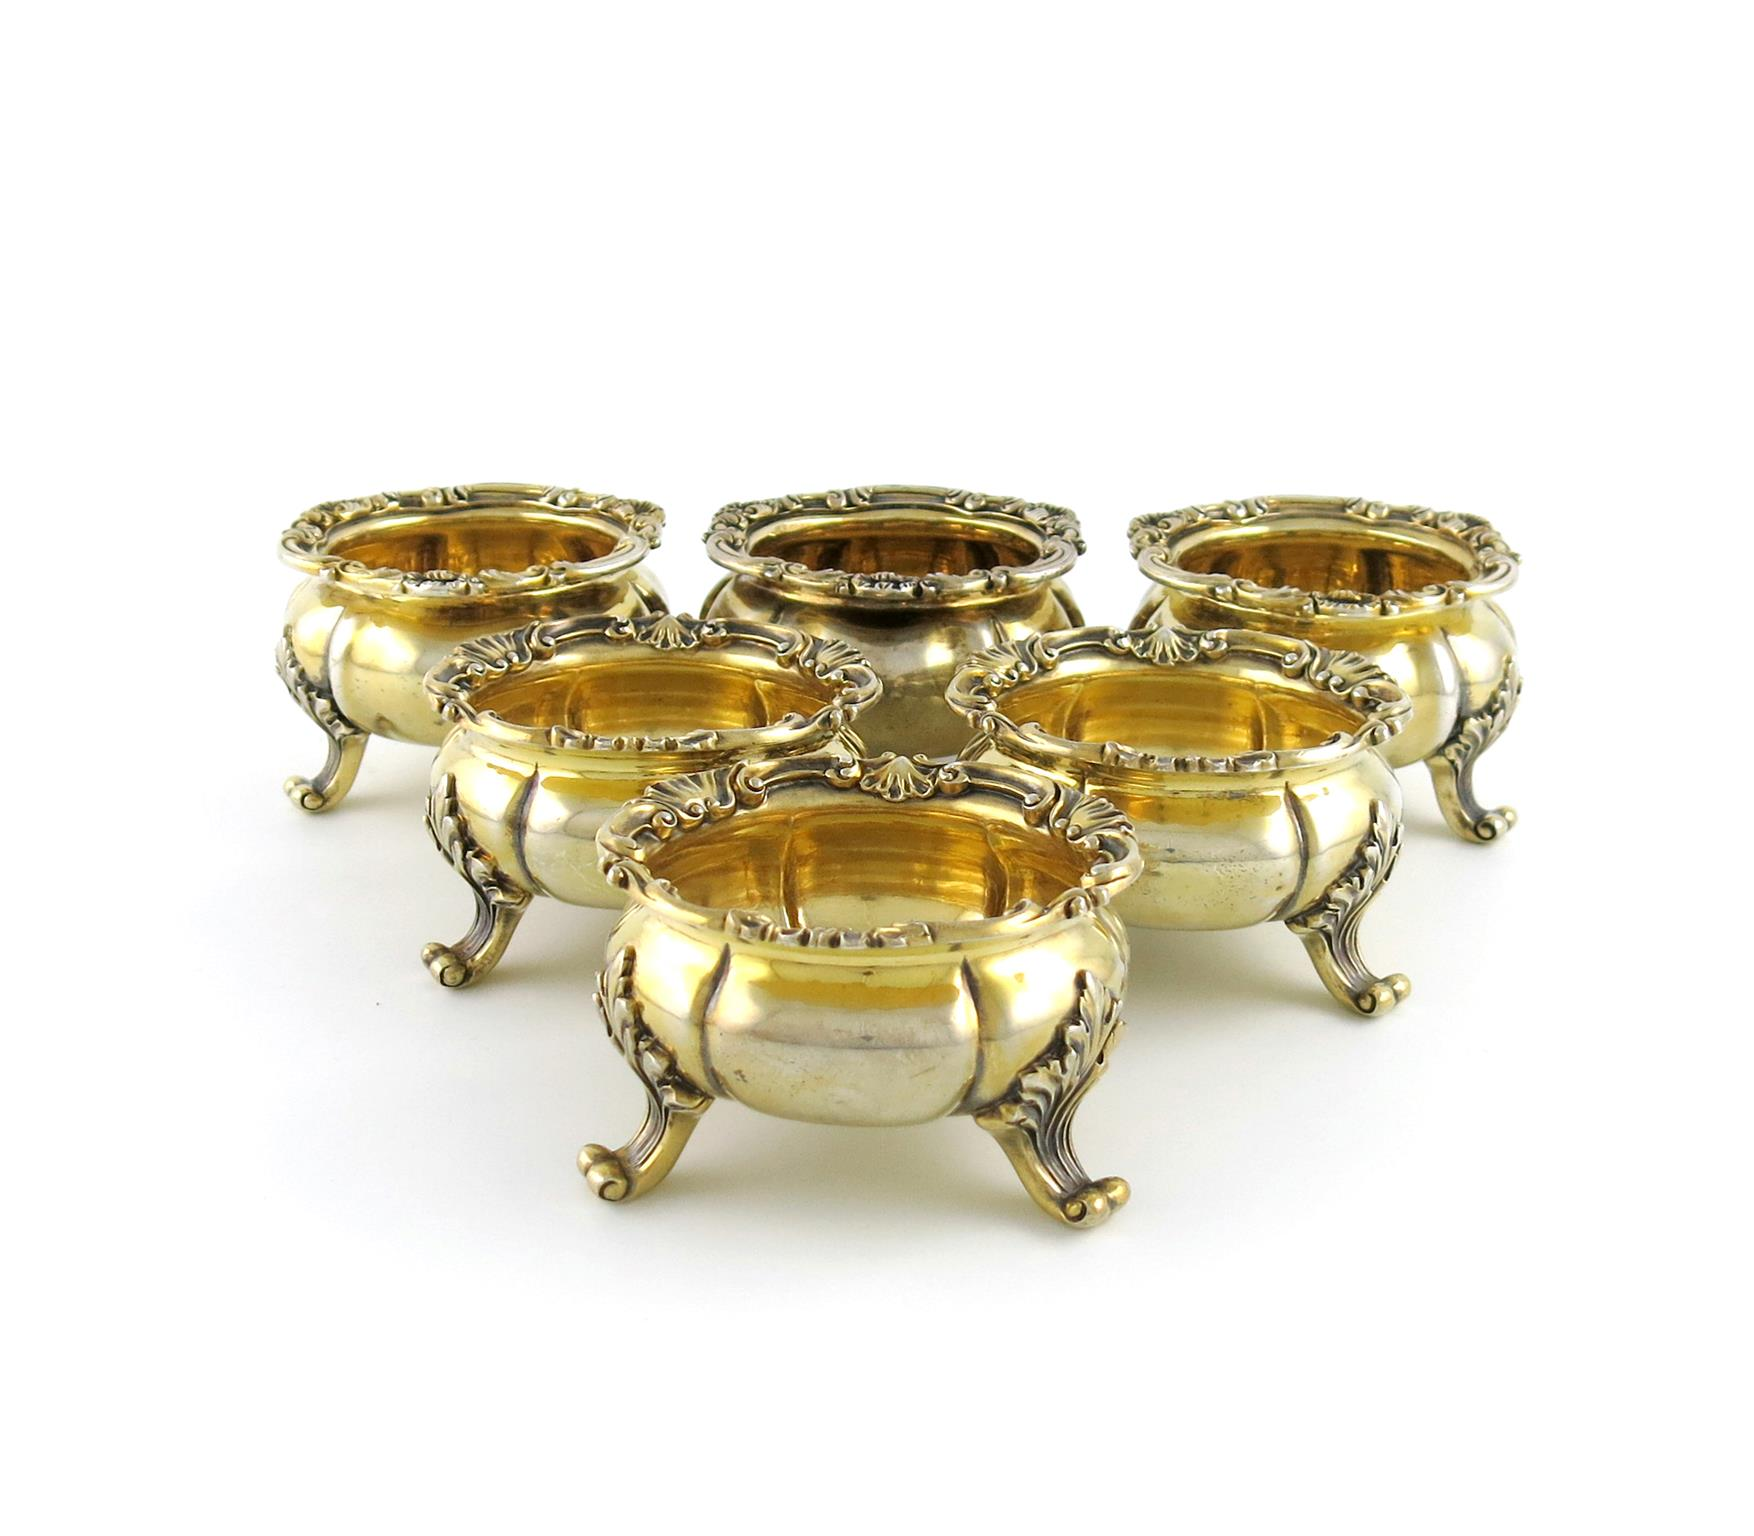 A matched set of six similar Victorian silver-gilt salt cellars